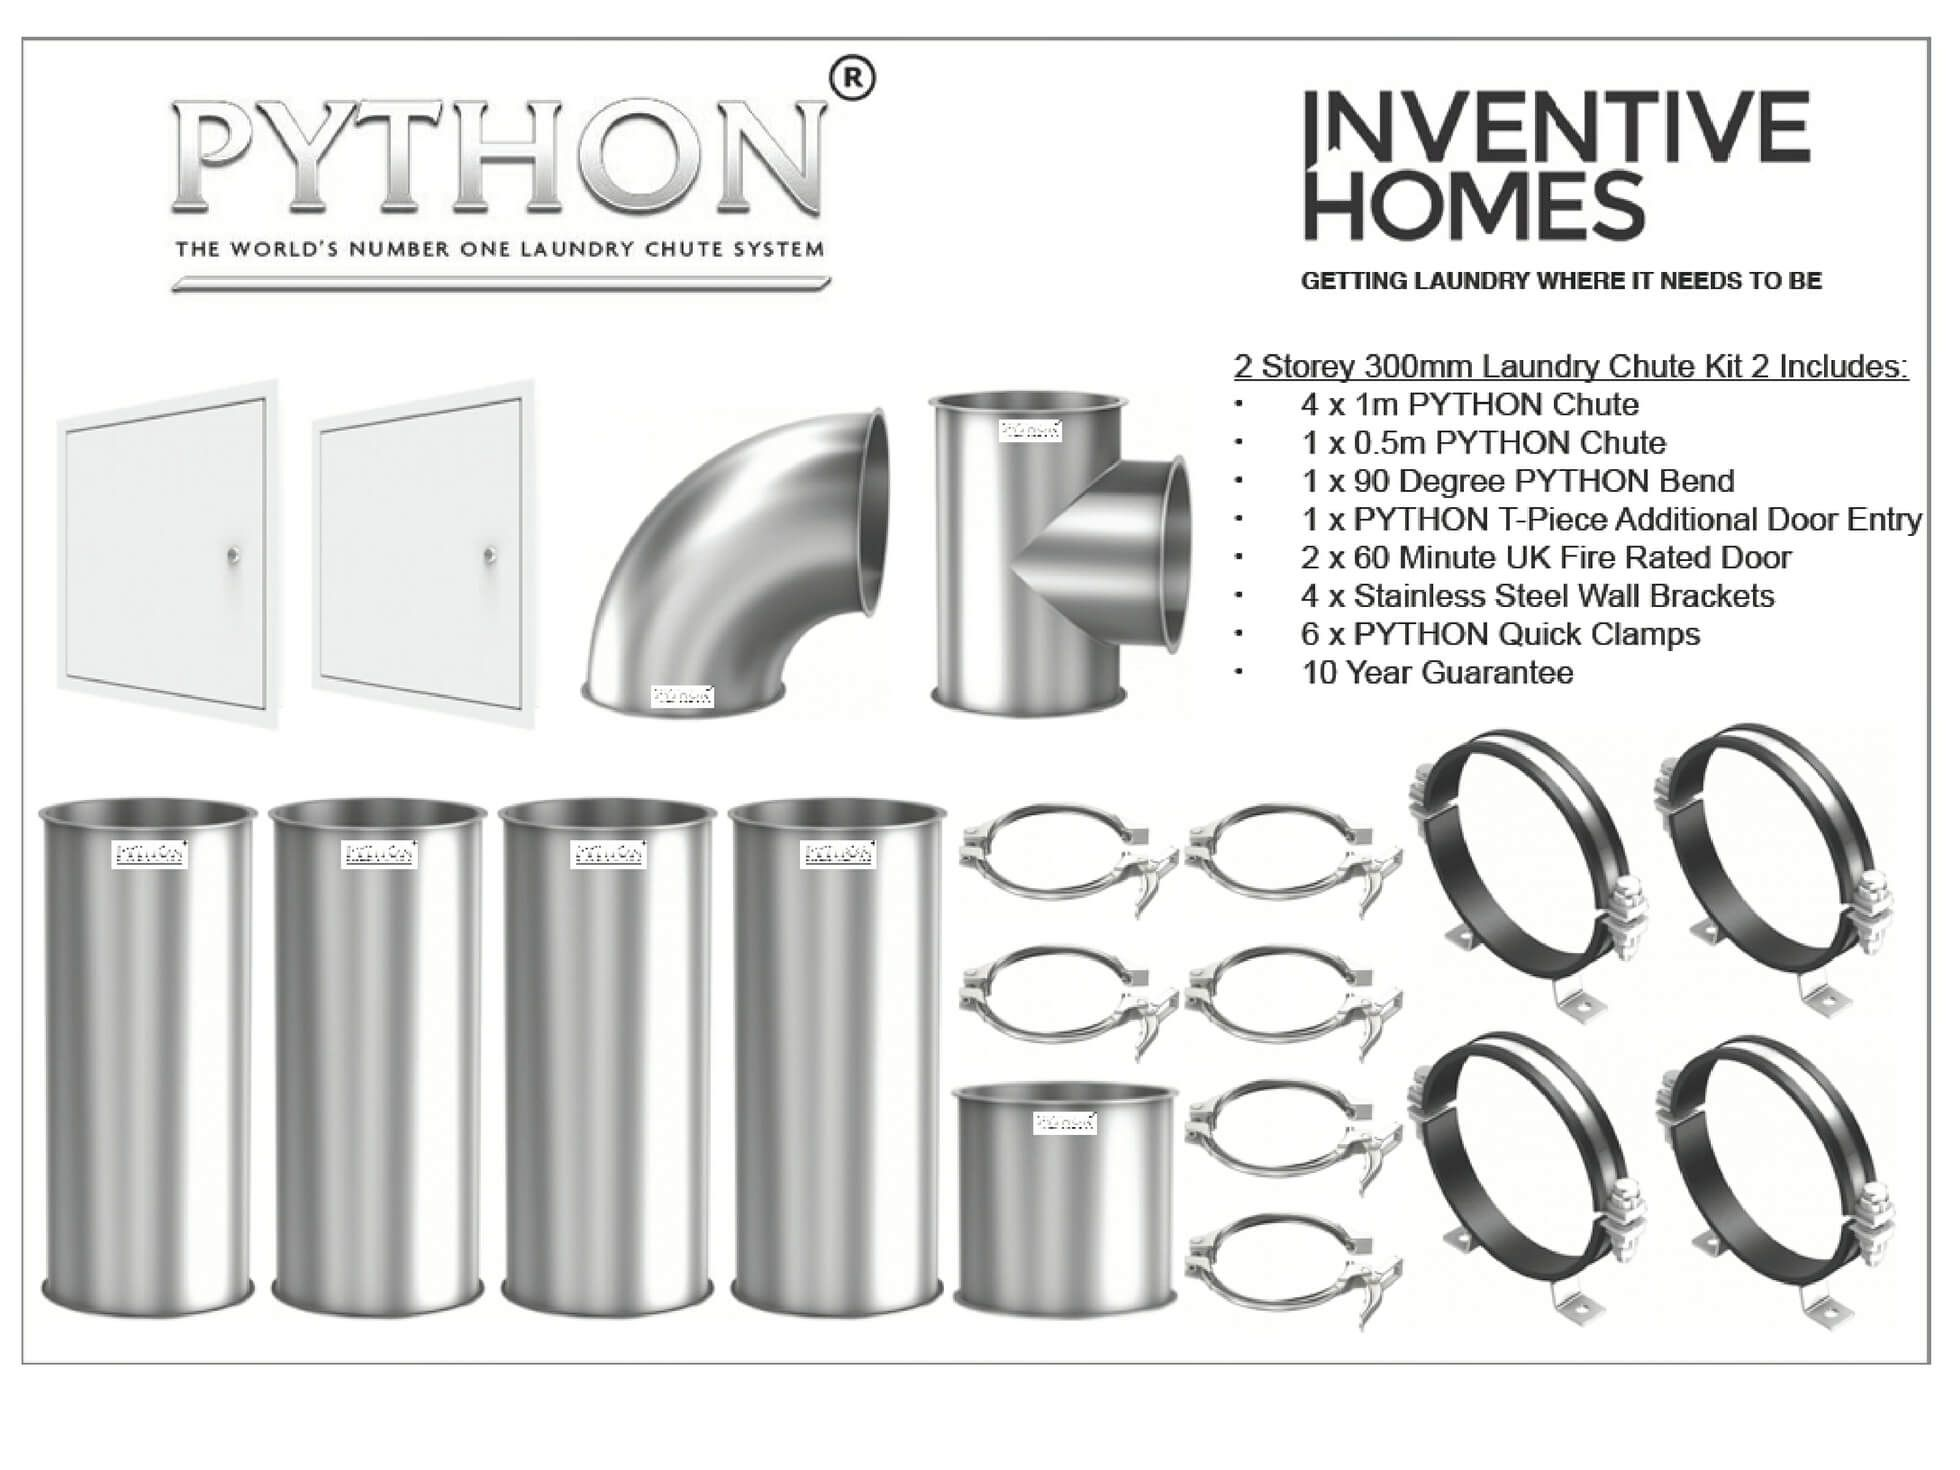 Python Laundry Chute 2 Storey House Kit 2 Inc 2 Entry Points